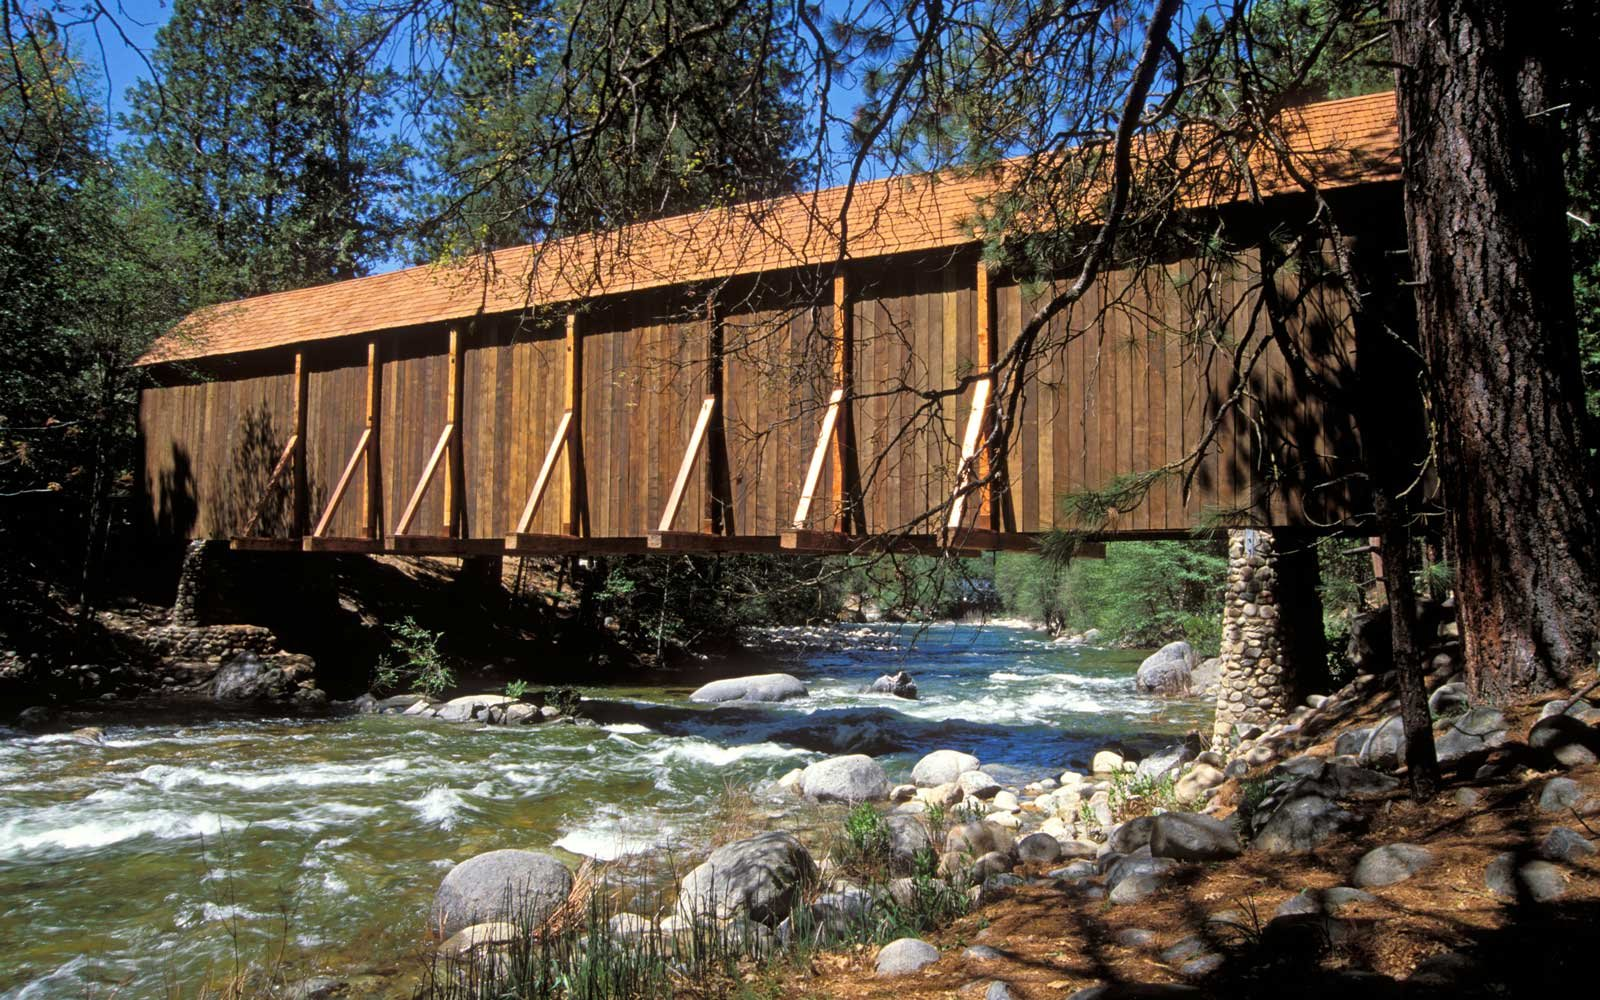 Wawona Covered Bridge Yosemite National Park California